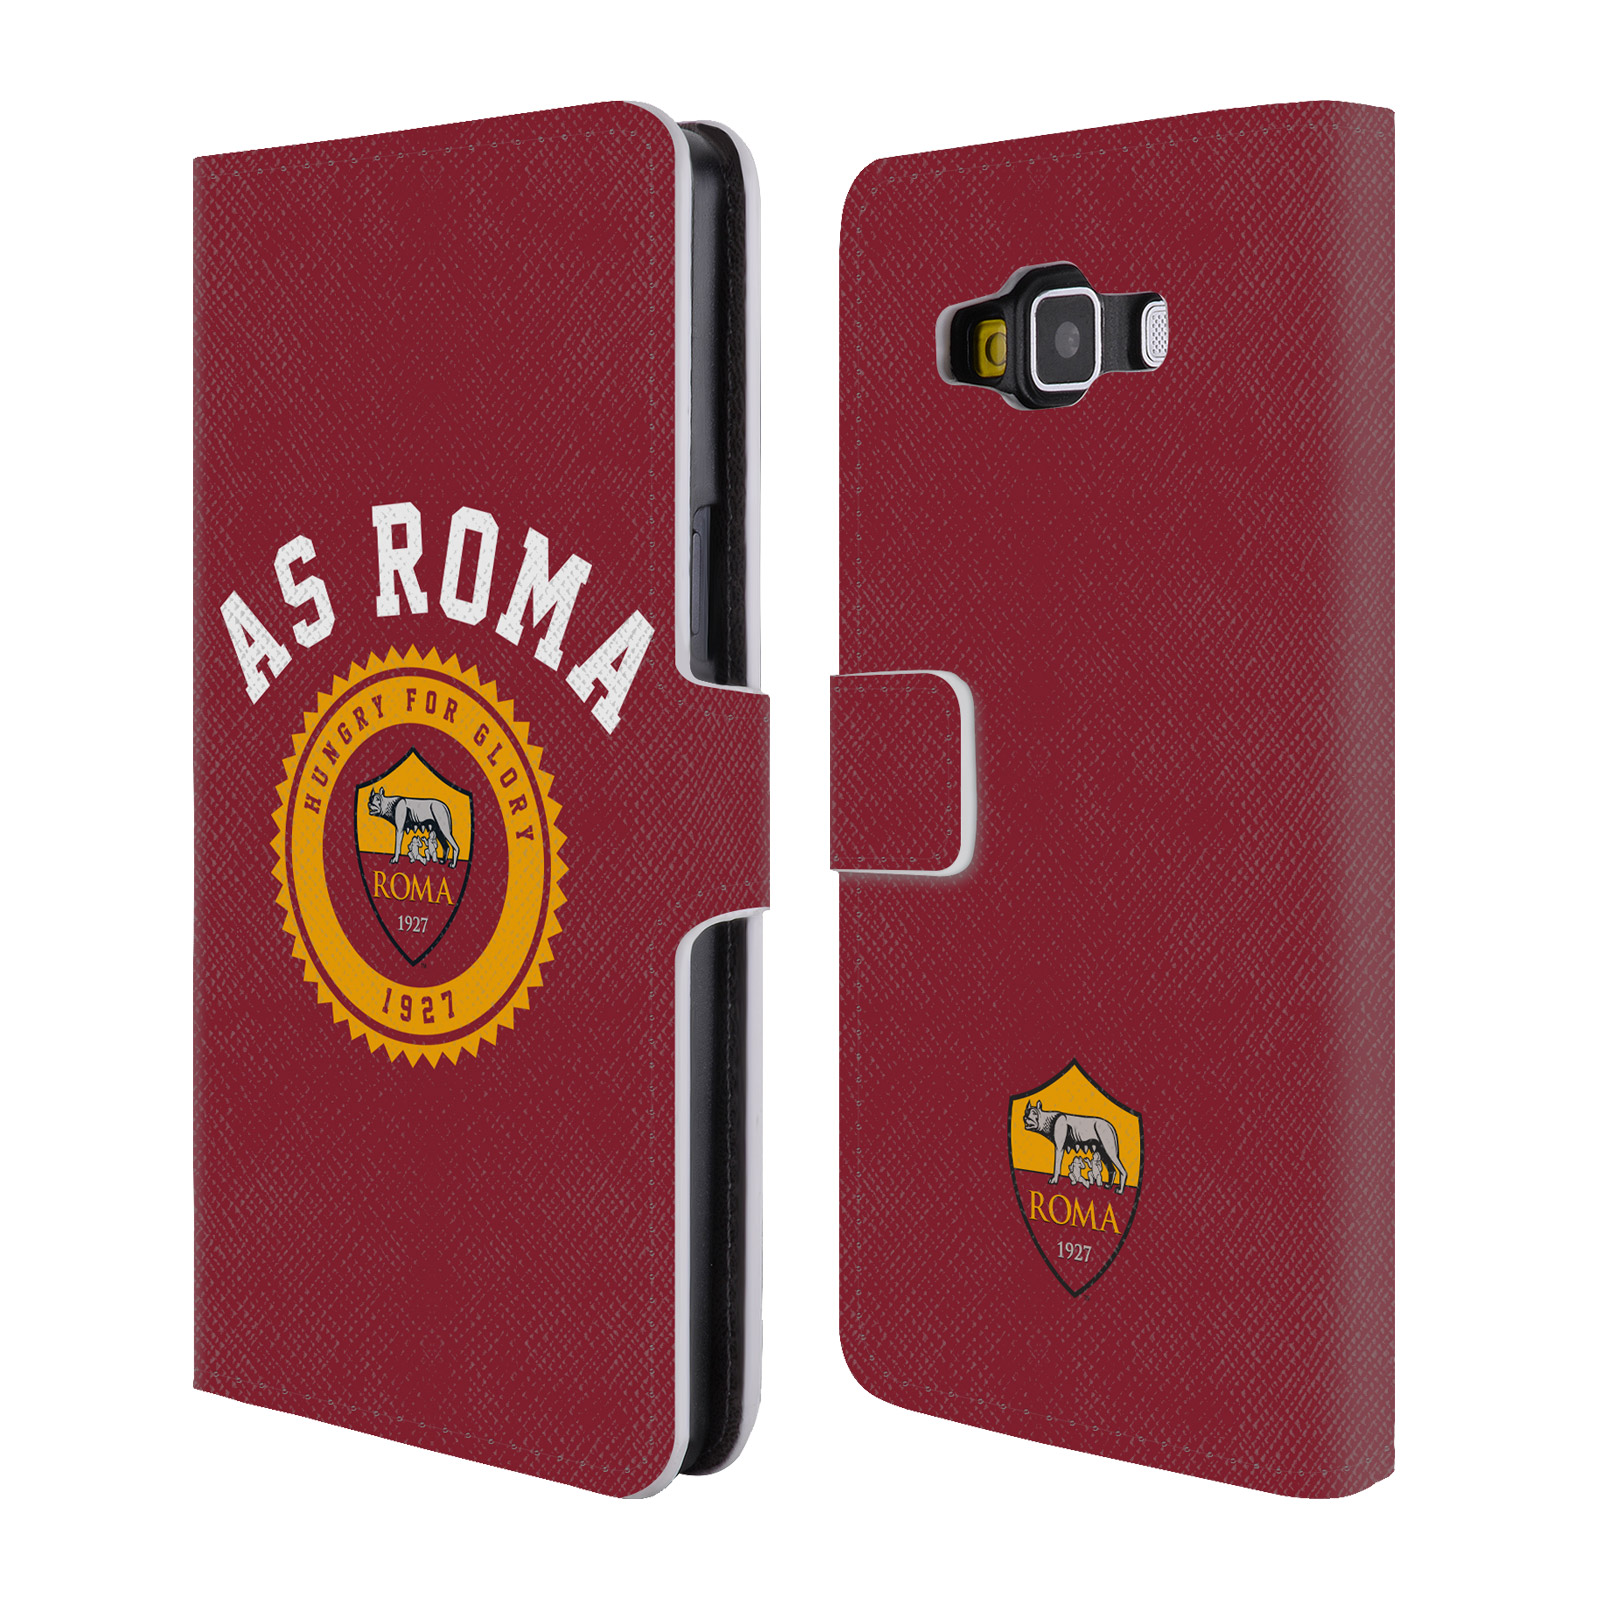 OFFICIAL-AS-ROMA-2017-18-TYPOGRAPHY-LEATHER-BOOK-CASE-FOR-SAMSUNG-PHONES-2